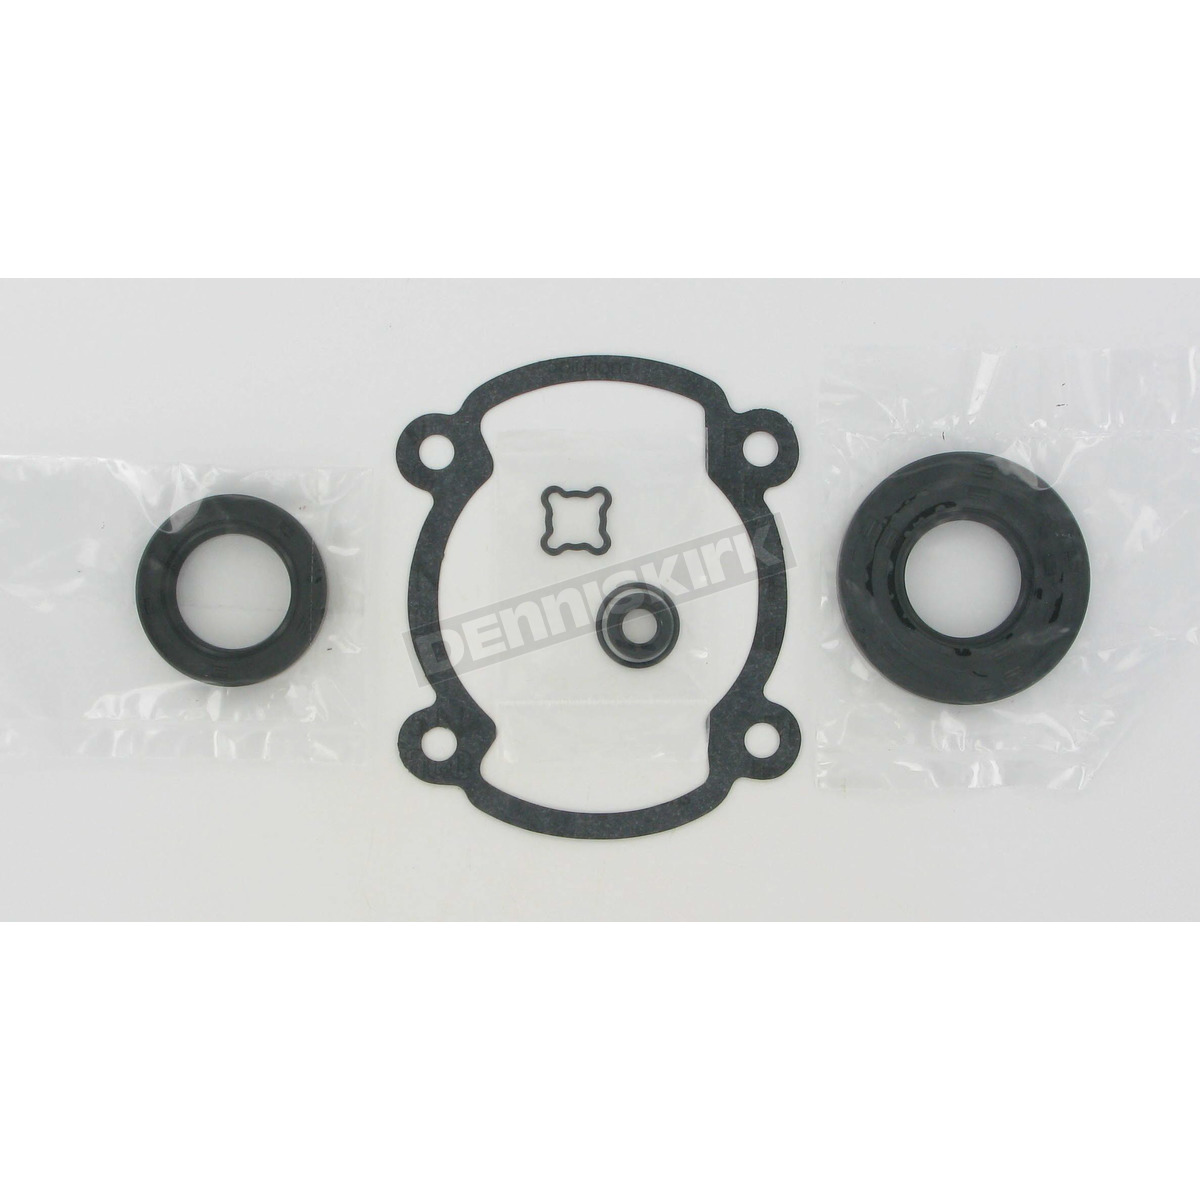 Winderosa 711105 Gasket Kit with Oil Seals